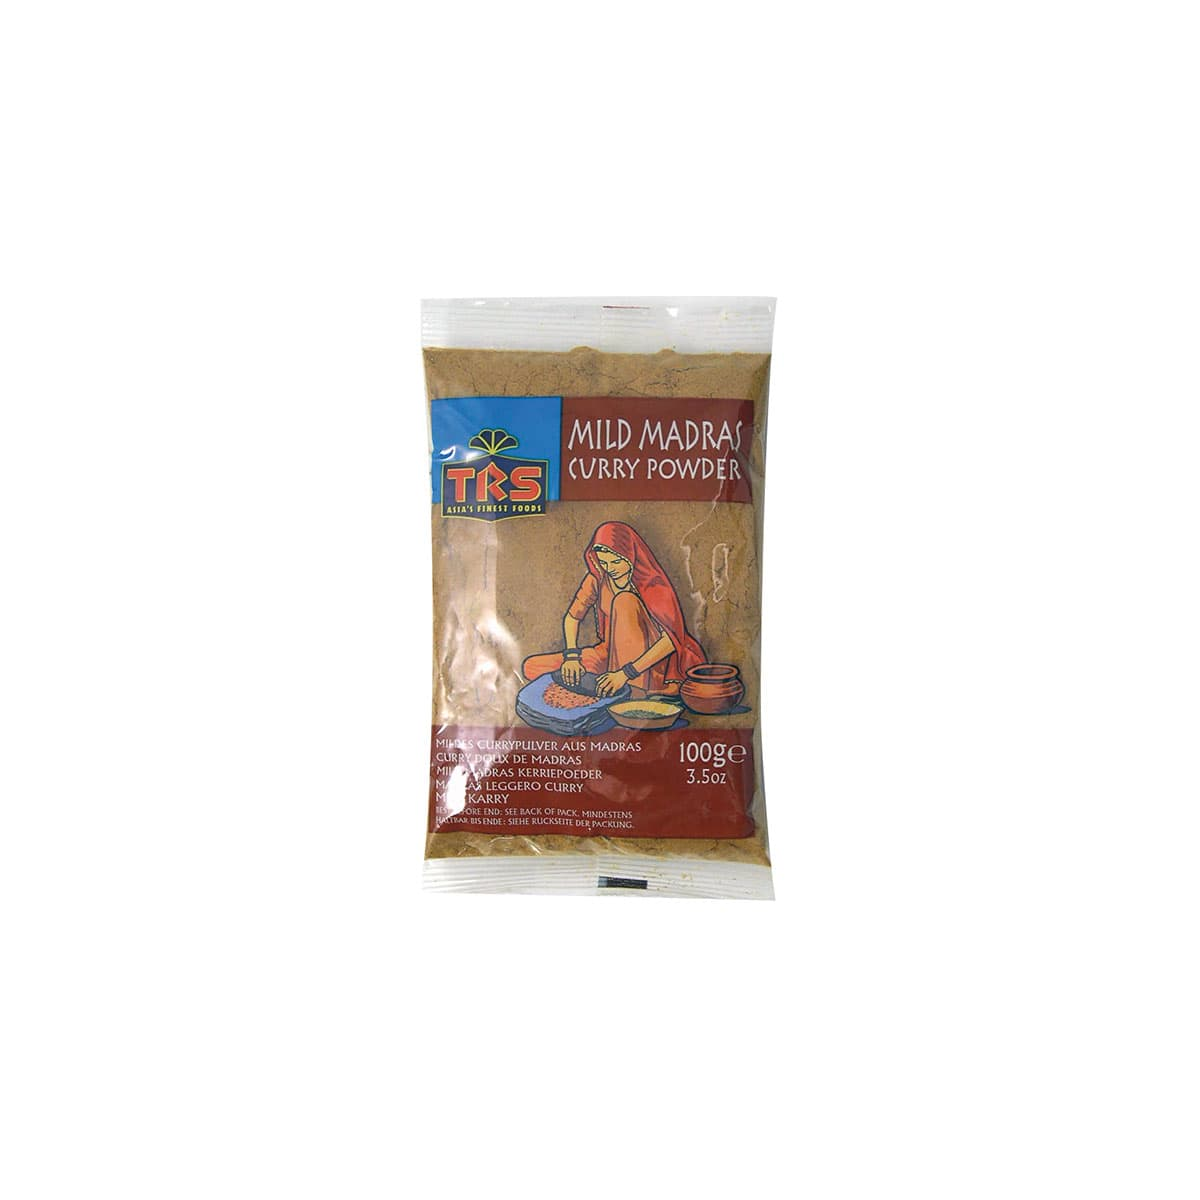 Curry madras mild di Trs